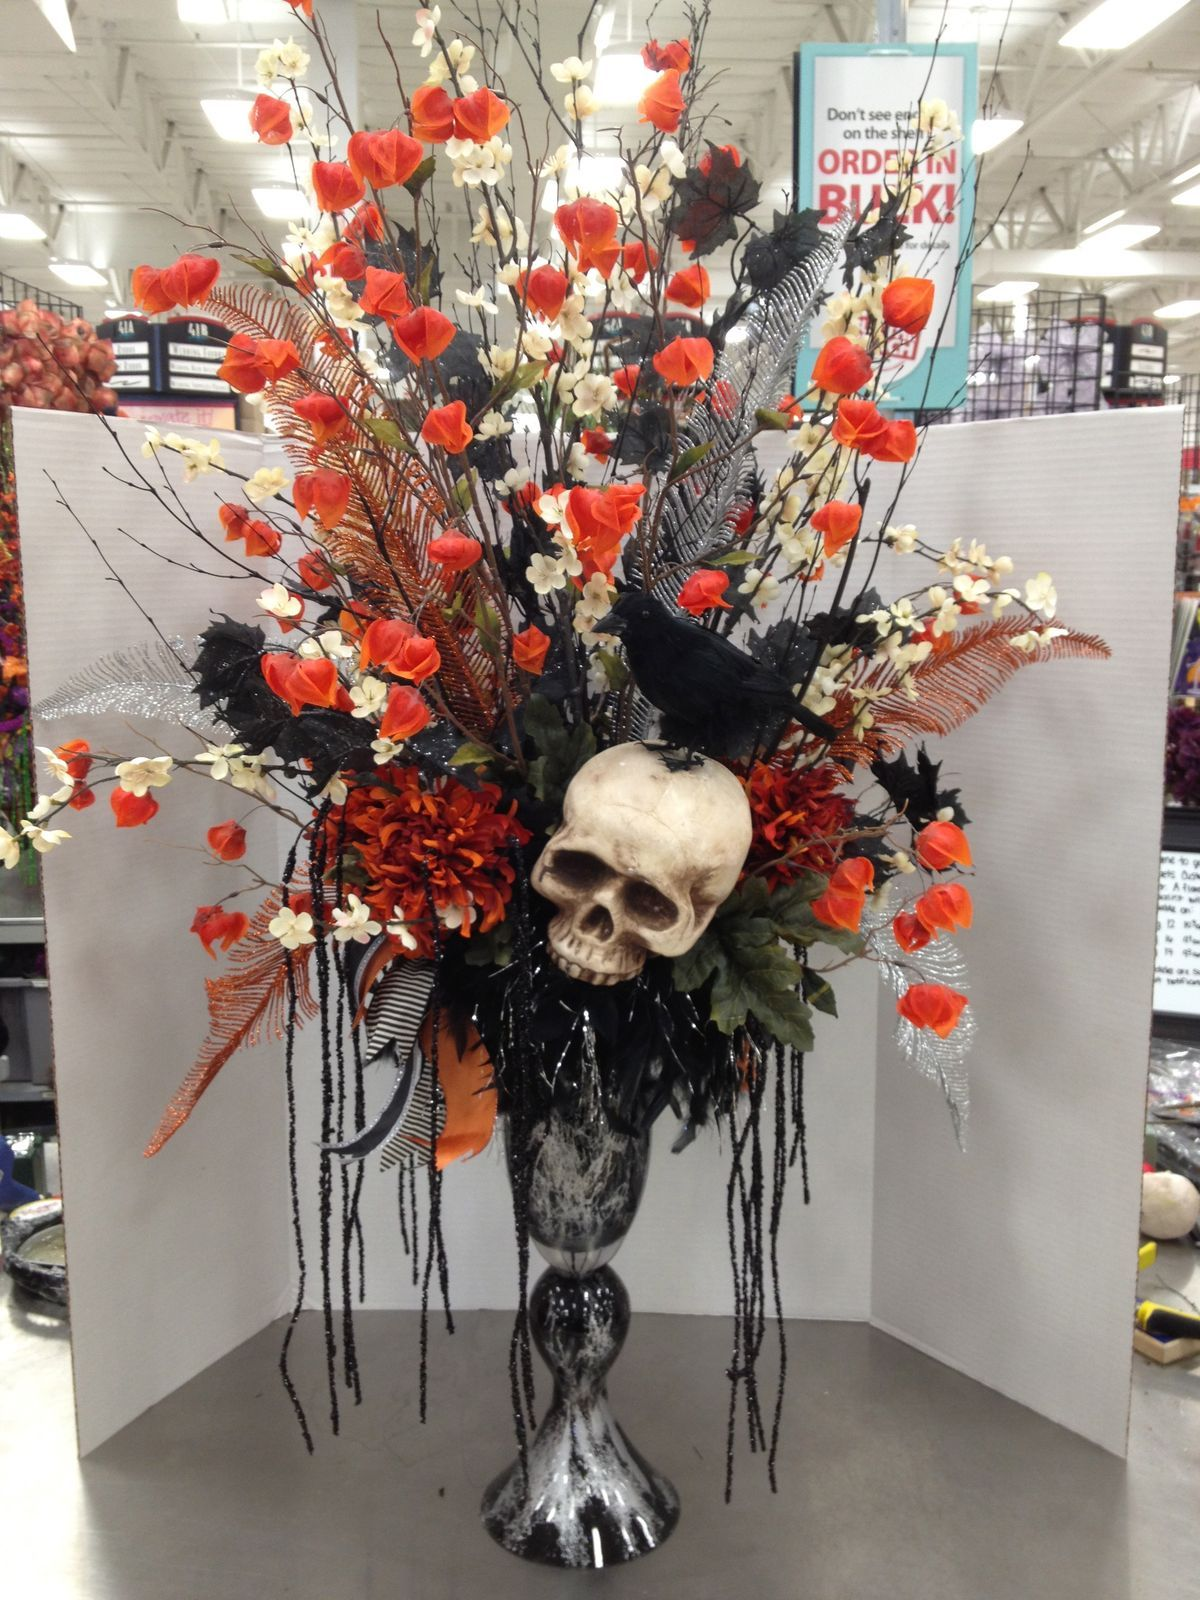 Pin by Cindy Mras on Halloween Pinterest - michaels halloween decorations